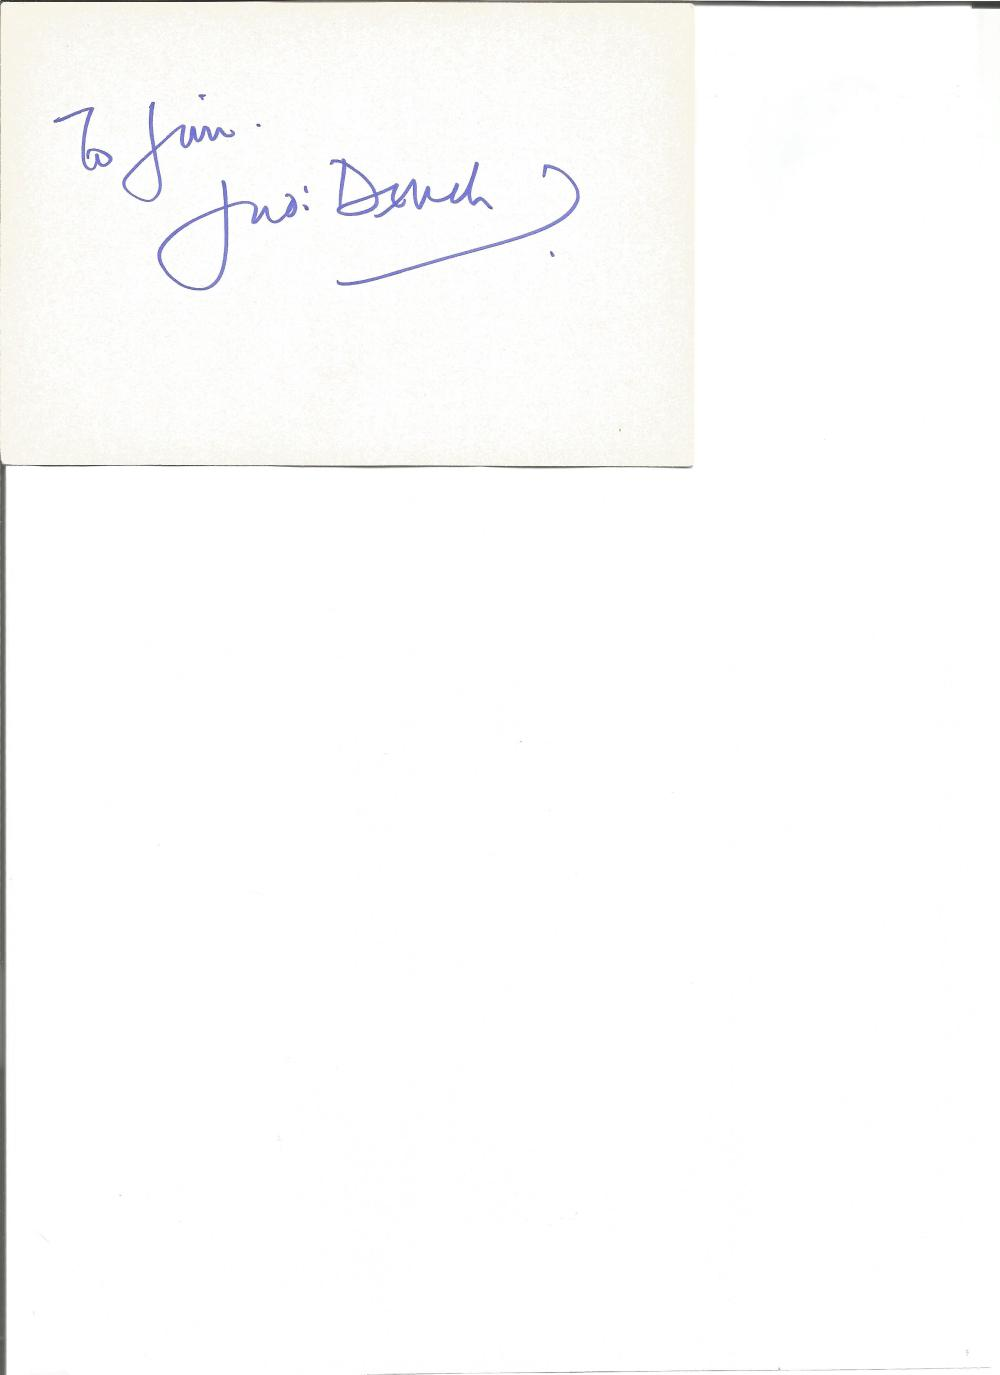 Judi Dench signed 6x4 card. Dedicated. Good Condition. All signed pieces come with a Certificate